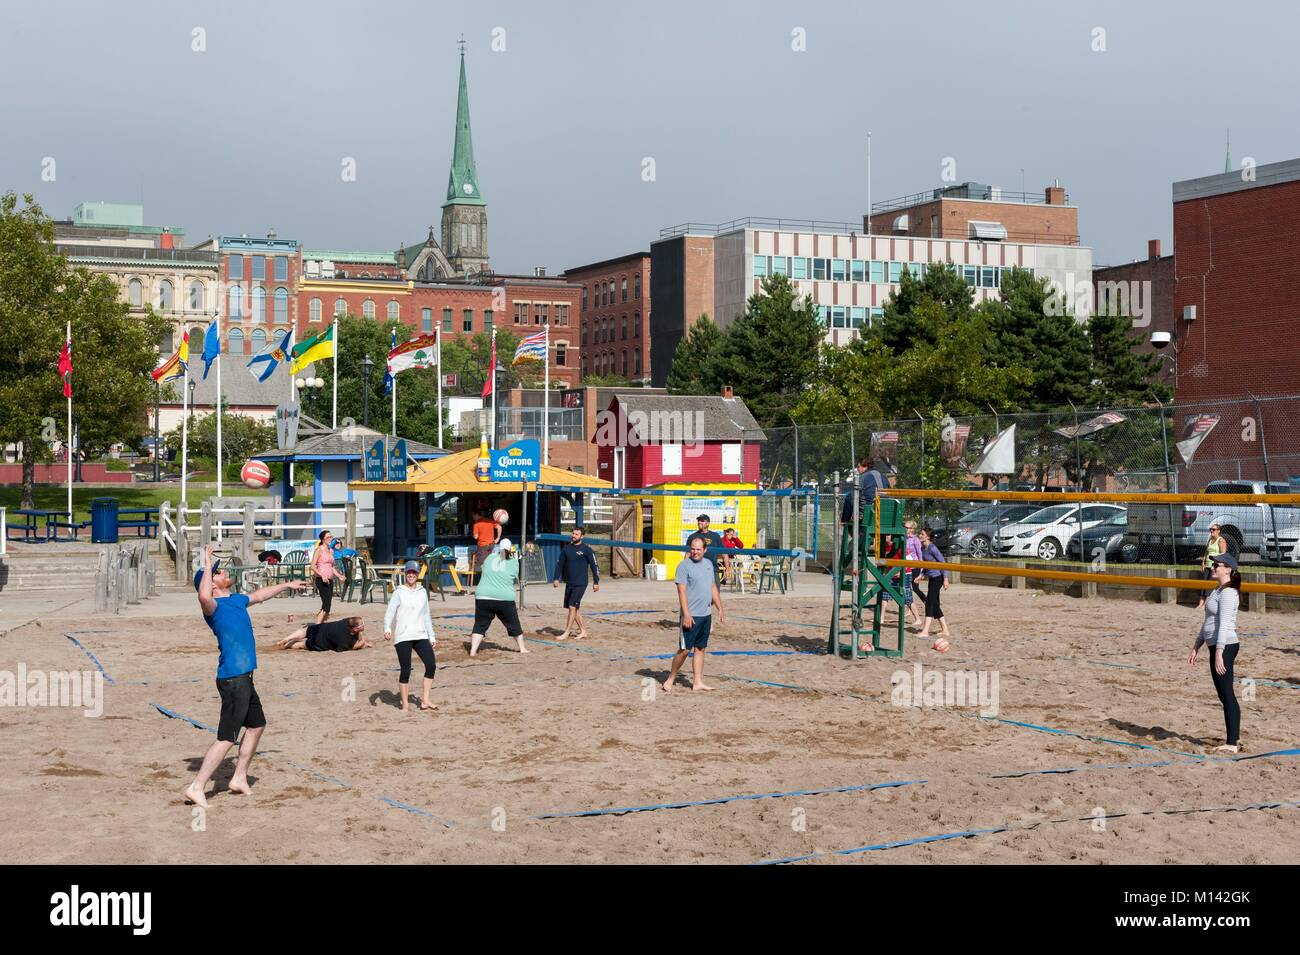 Canada, New Brunswick, Saint John, Market Square, Beach Volleyball Party - Stock Image